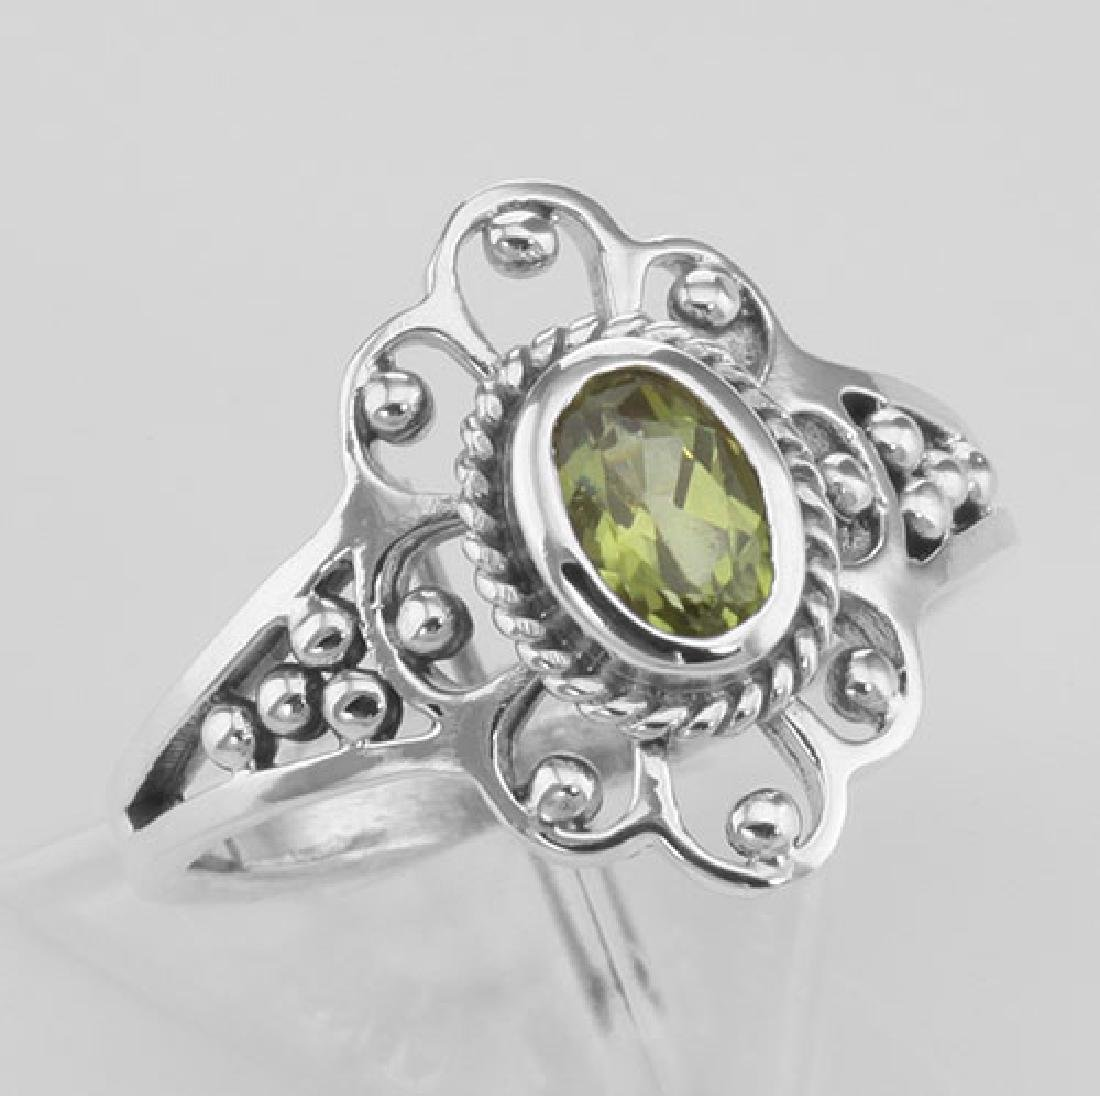 Antique Style Genuine Peridot Ring - Sterling Silver